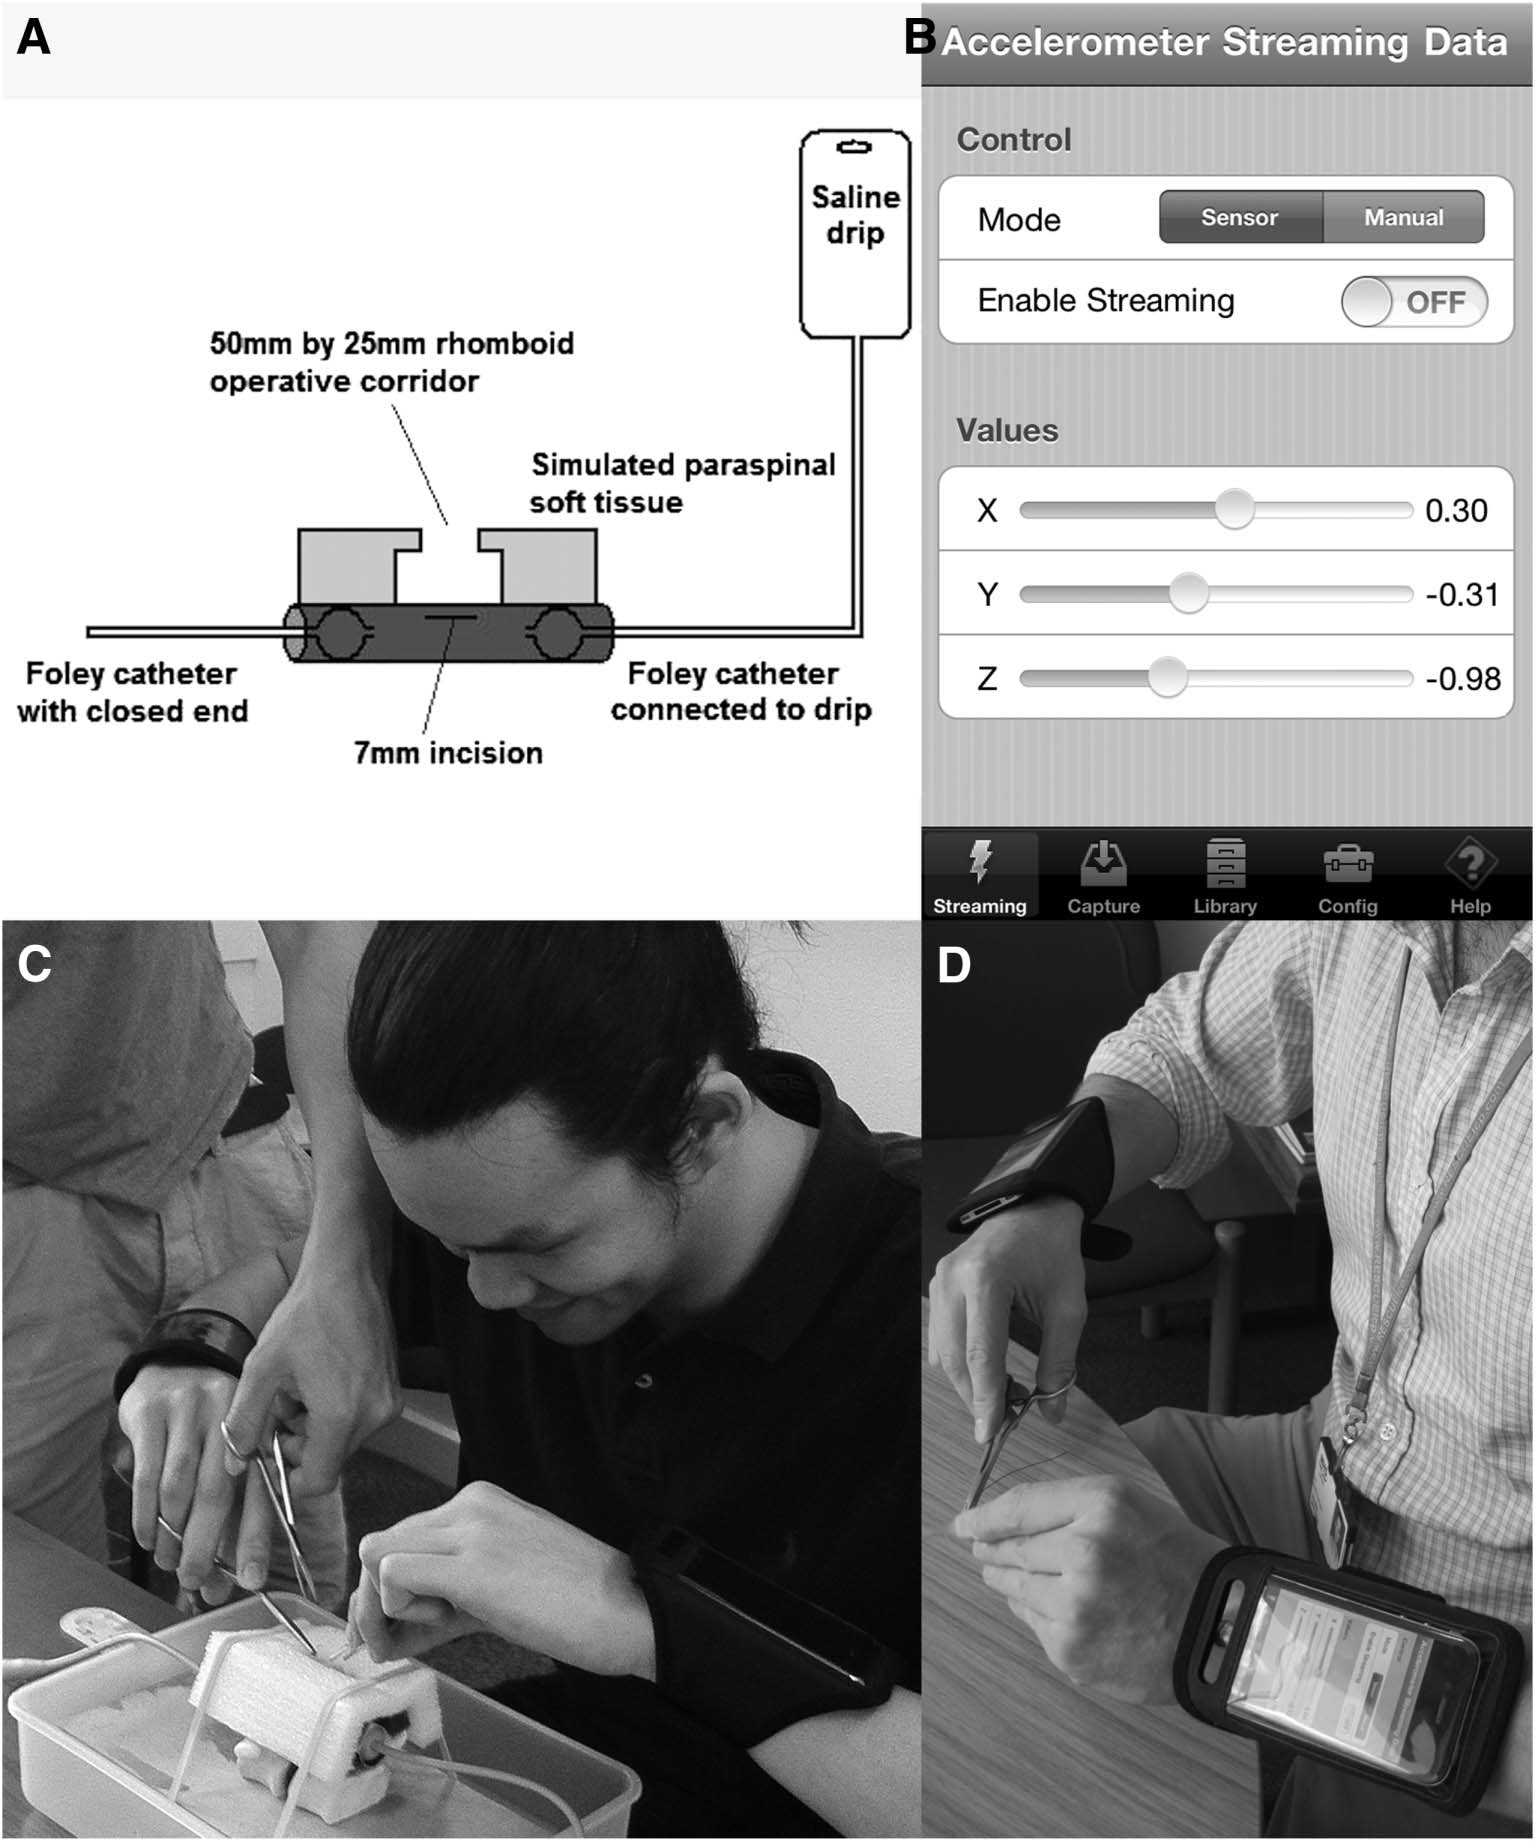 Validating the Use of Smartphone-Based Accelerometers for Performance Assessment in a Simulated Neurosurgical Task